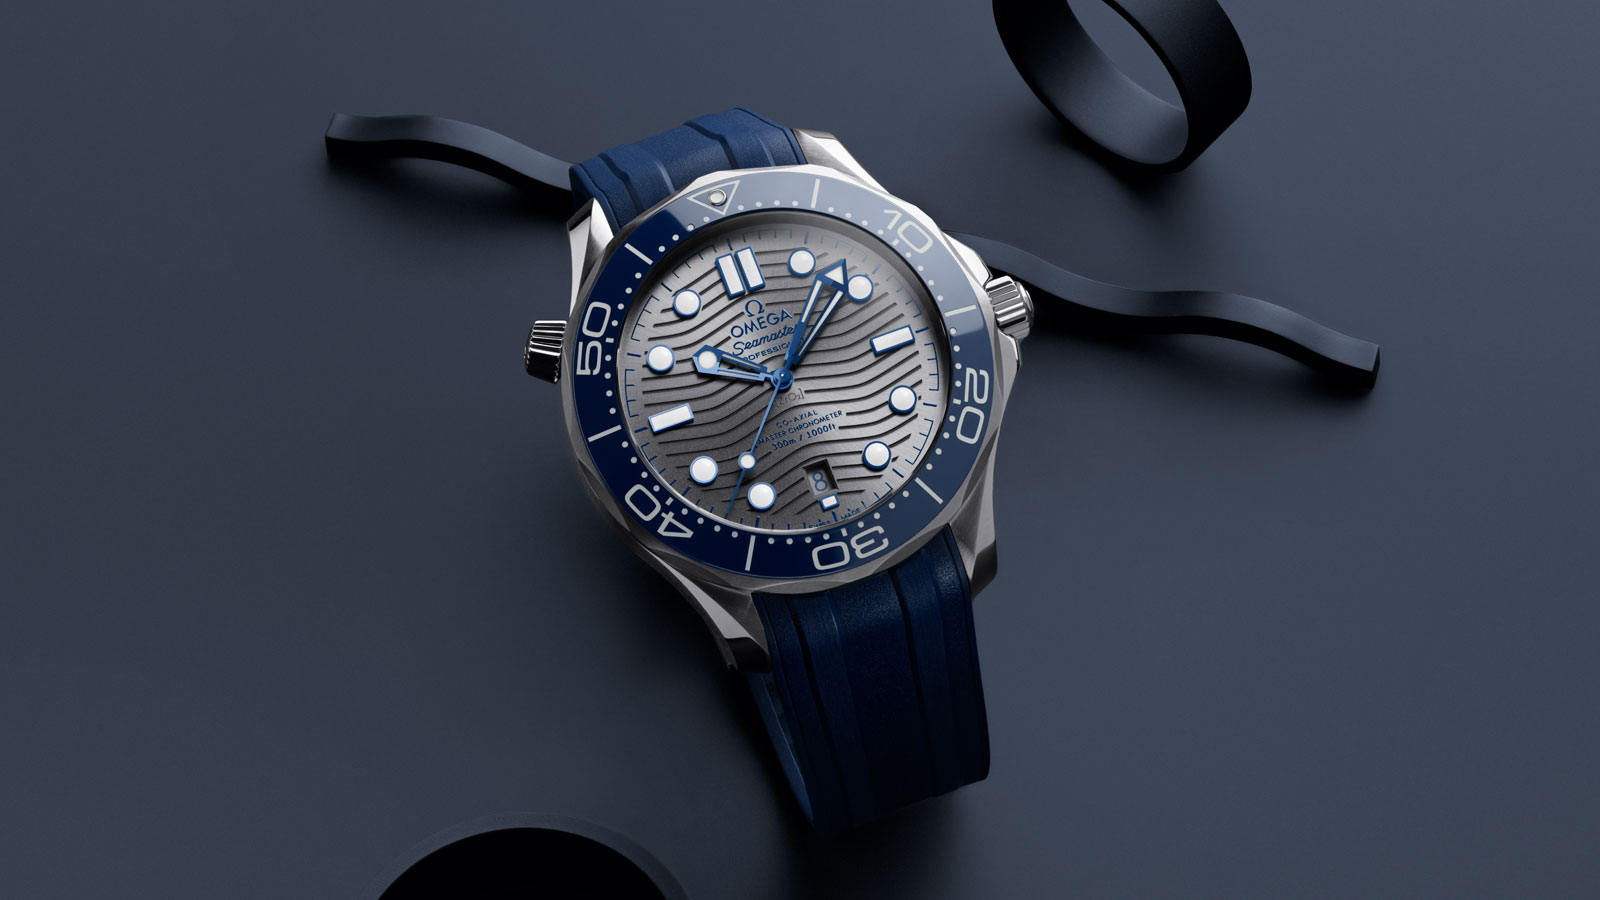 Seamaster Diver 300 M Diver 300M Omega Co‑Axial Master Chronometer 42 mm - 210.32.42.20.06.001 - View 1